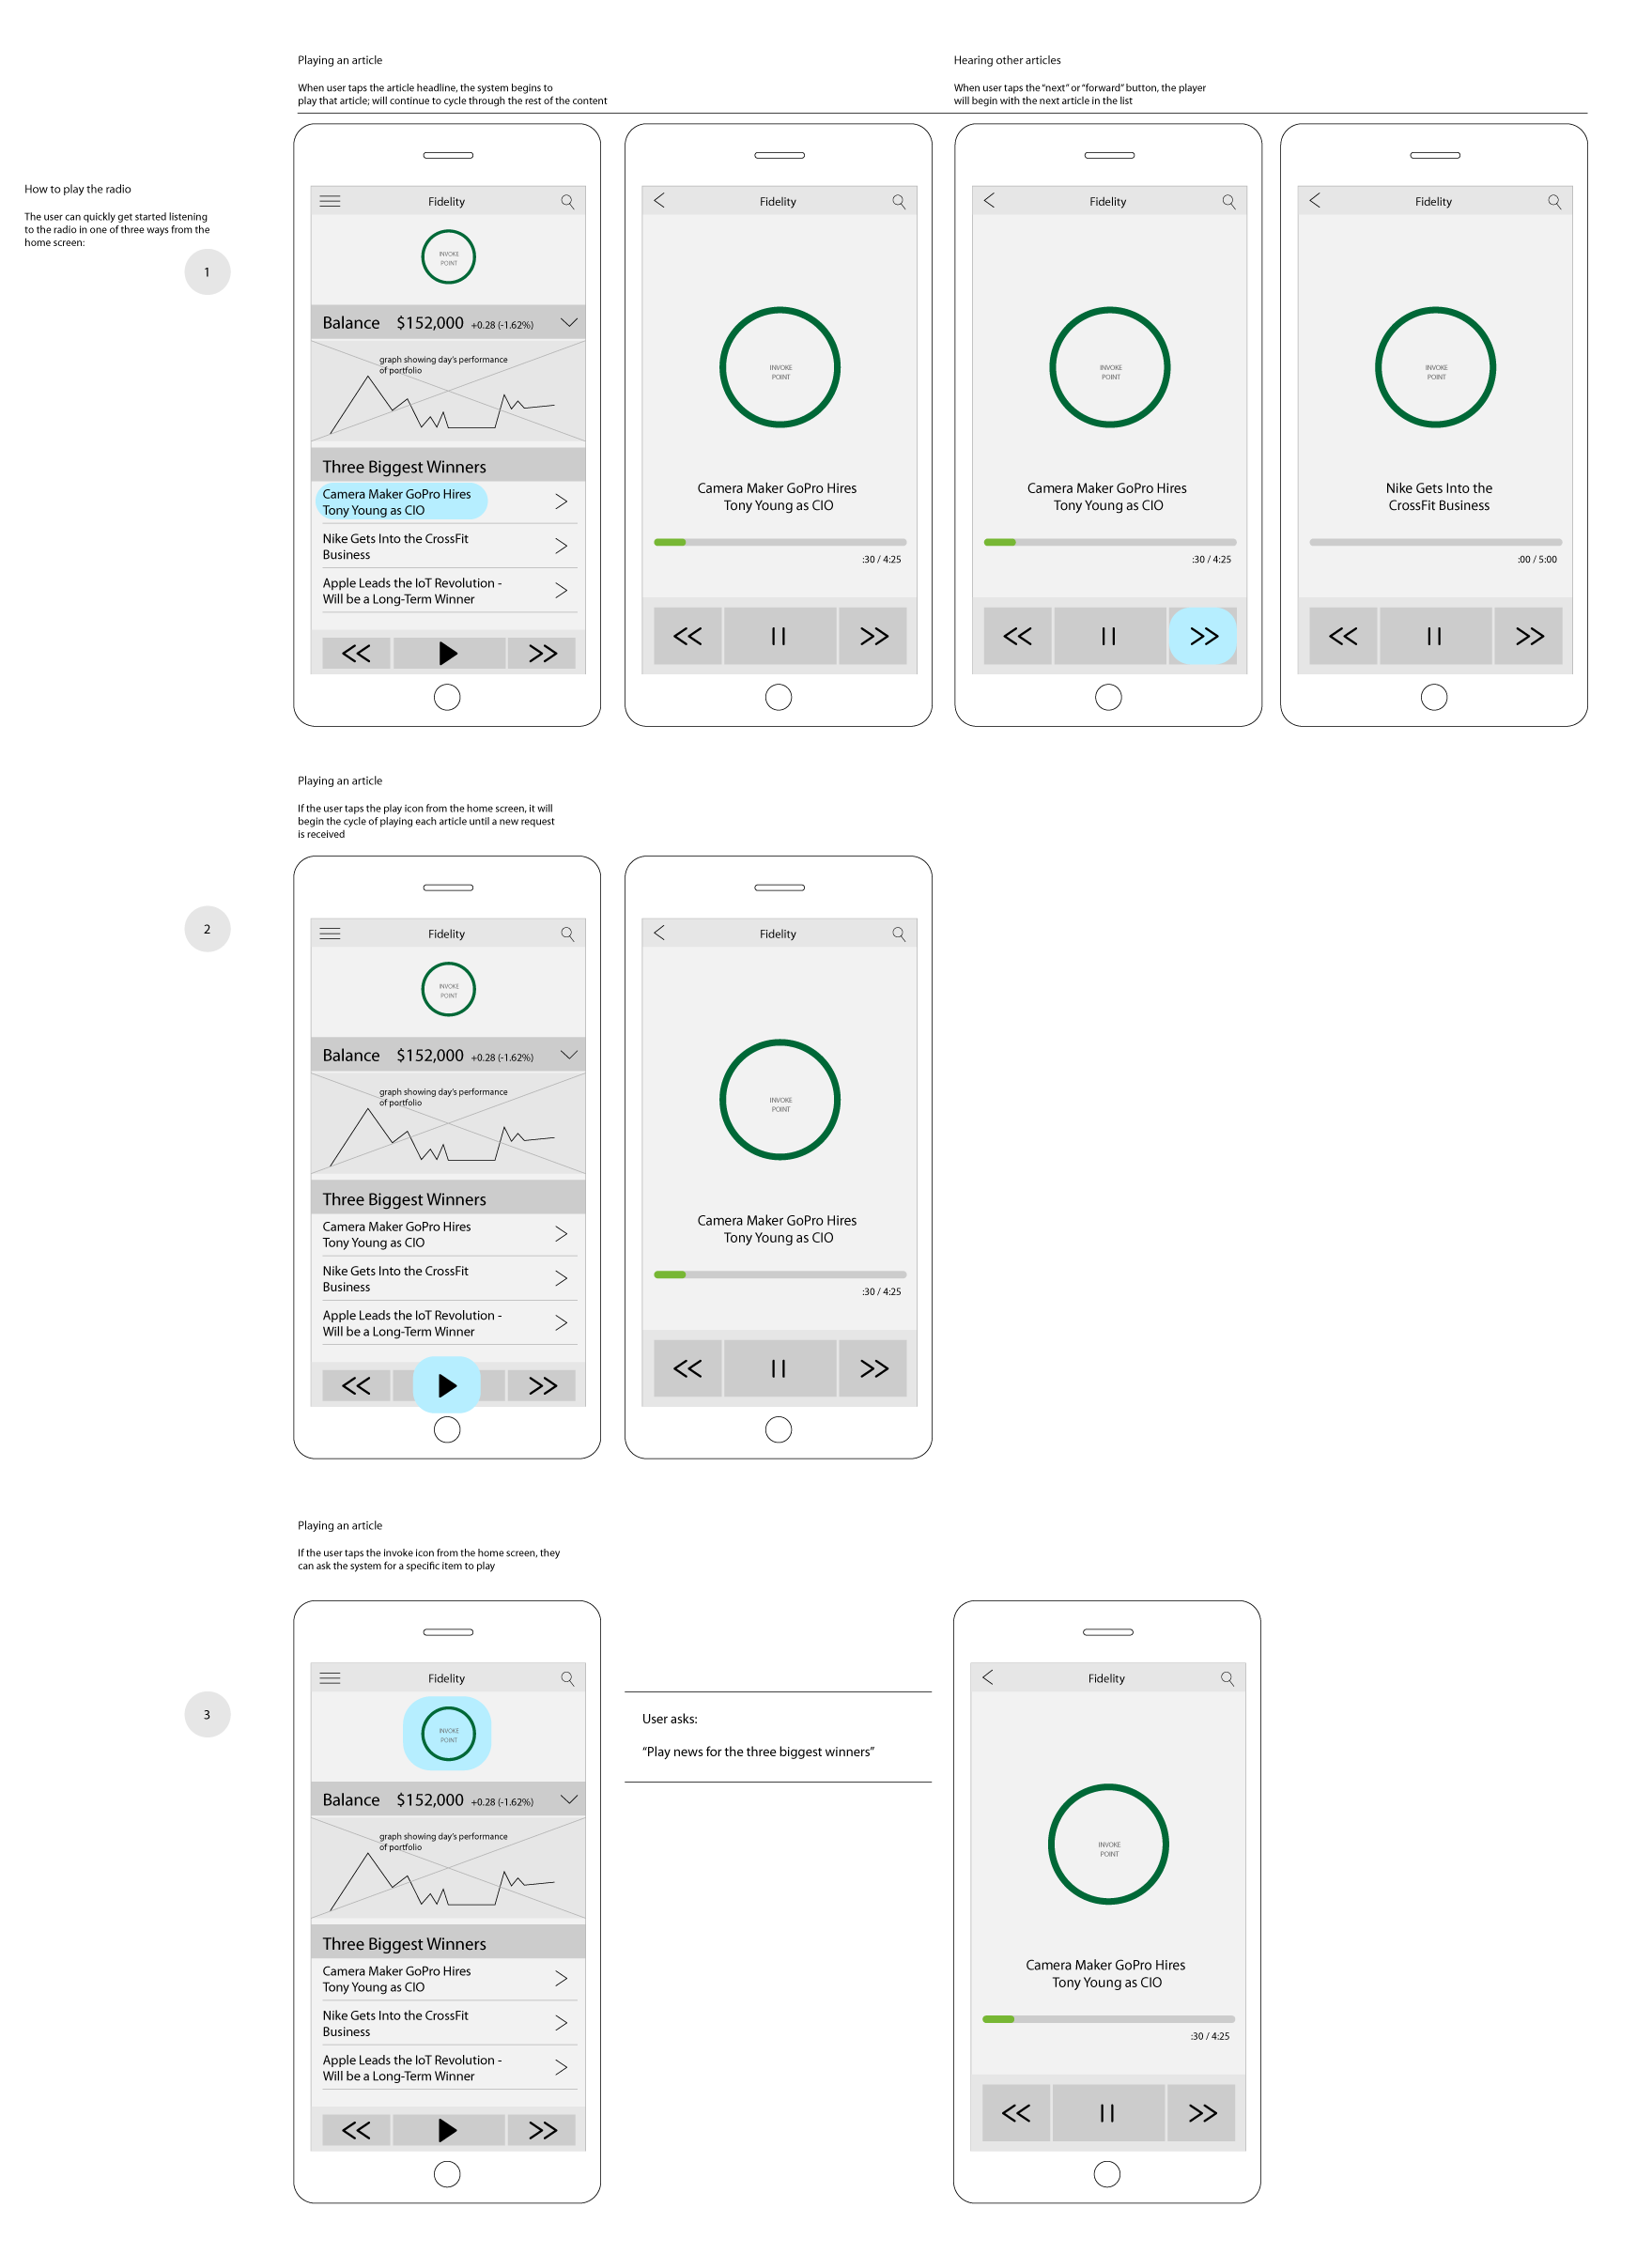 Fidelity_Wireframes3.png